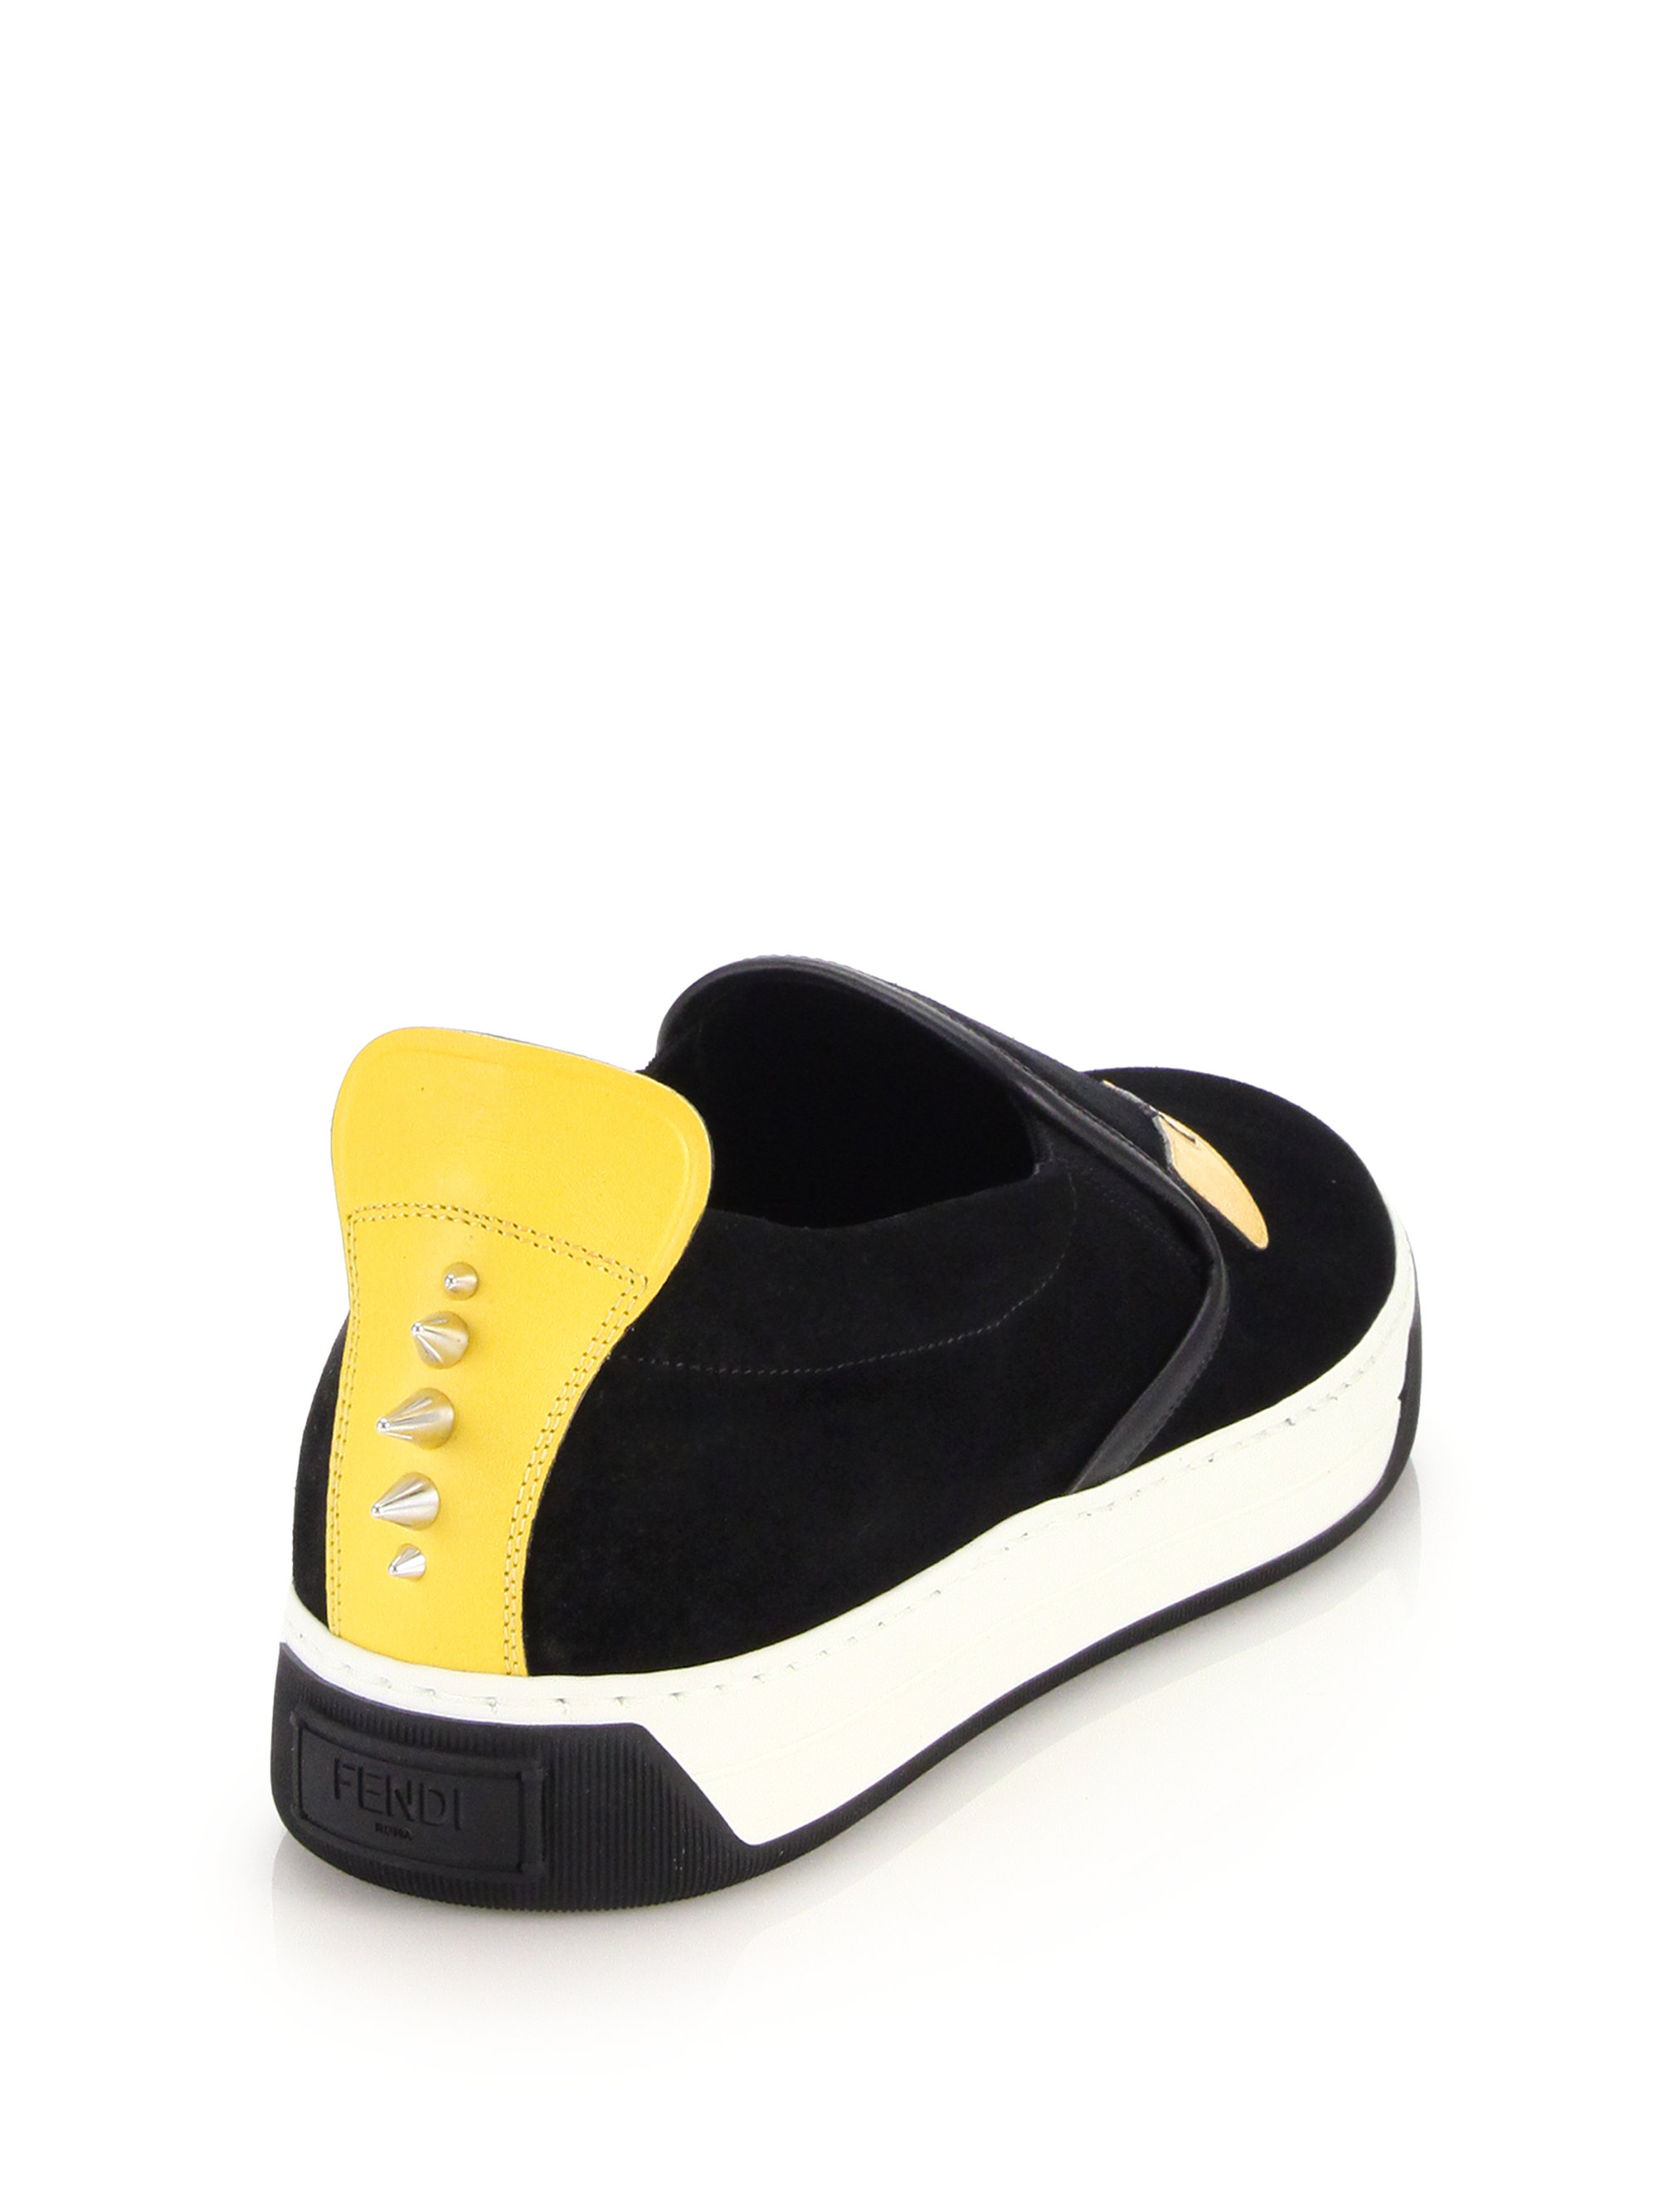 FendiSc2onPG5sq Slip-On Sneakers WyNpK